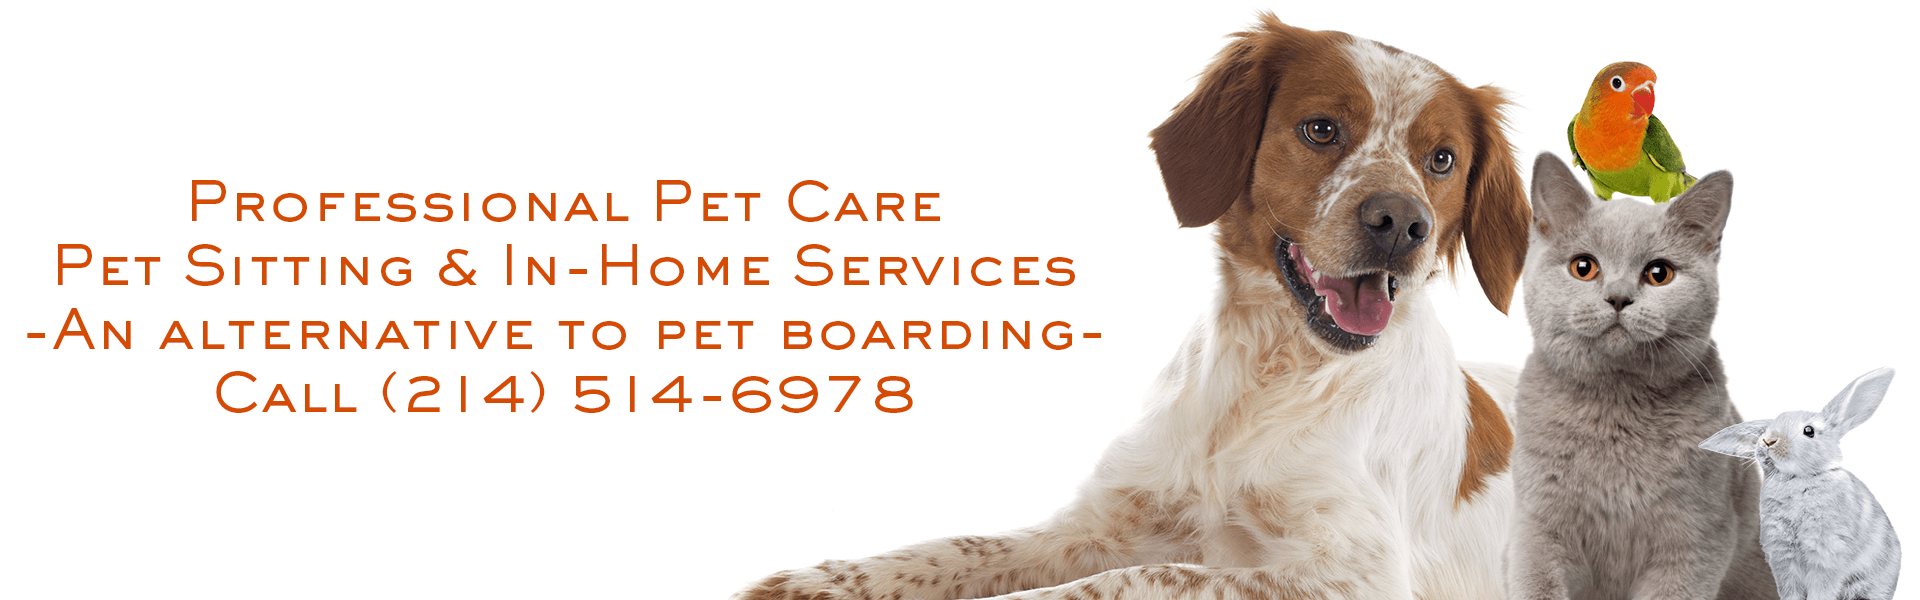 Coppell Pet Sitting, An Alternative to Pet Boarding, https://annies-pet-sitting.com